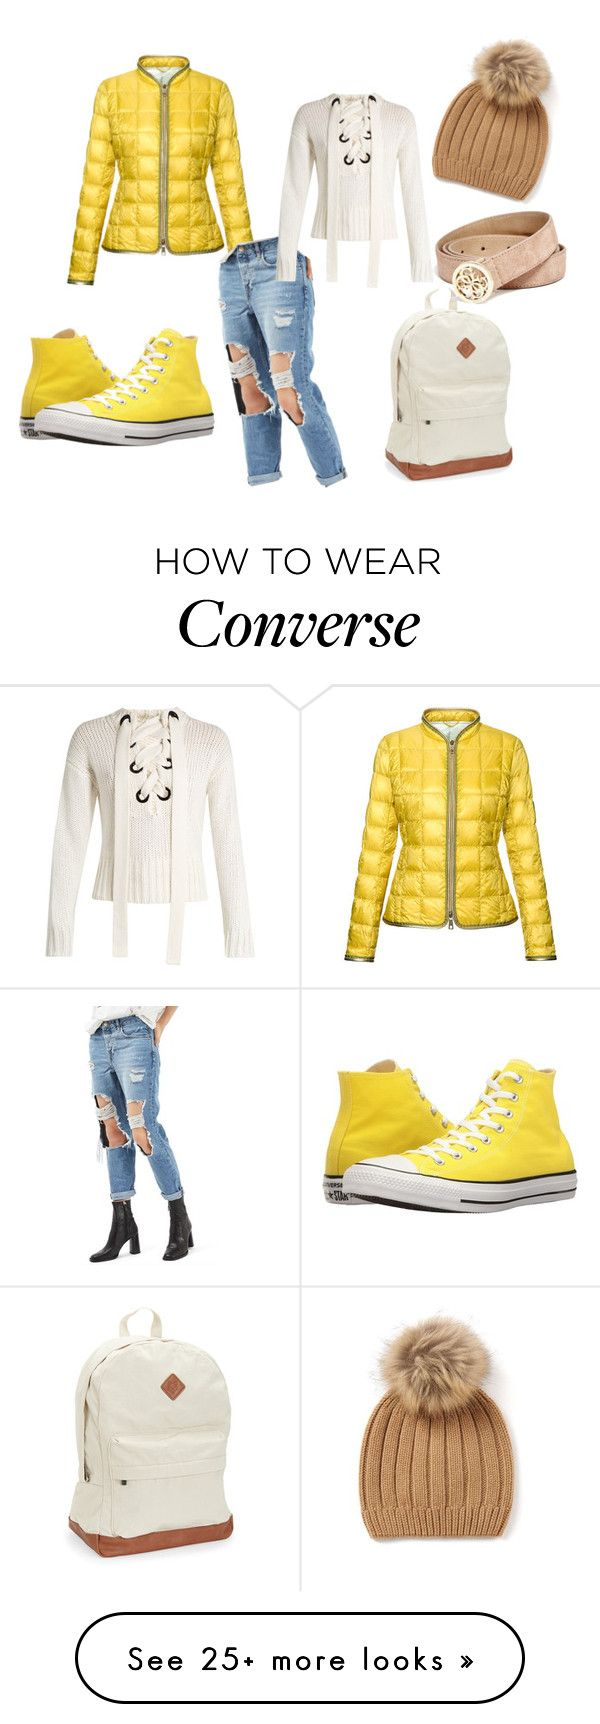 """:)"" by rabija-salkic-imamovic on Polyvore featuring FAY, Topshop, Joseph, Converse, Aéropostale and GUESS"